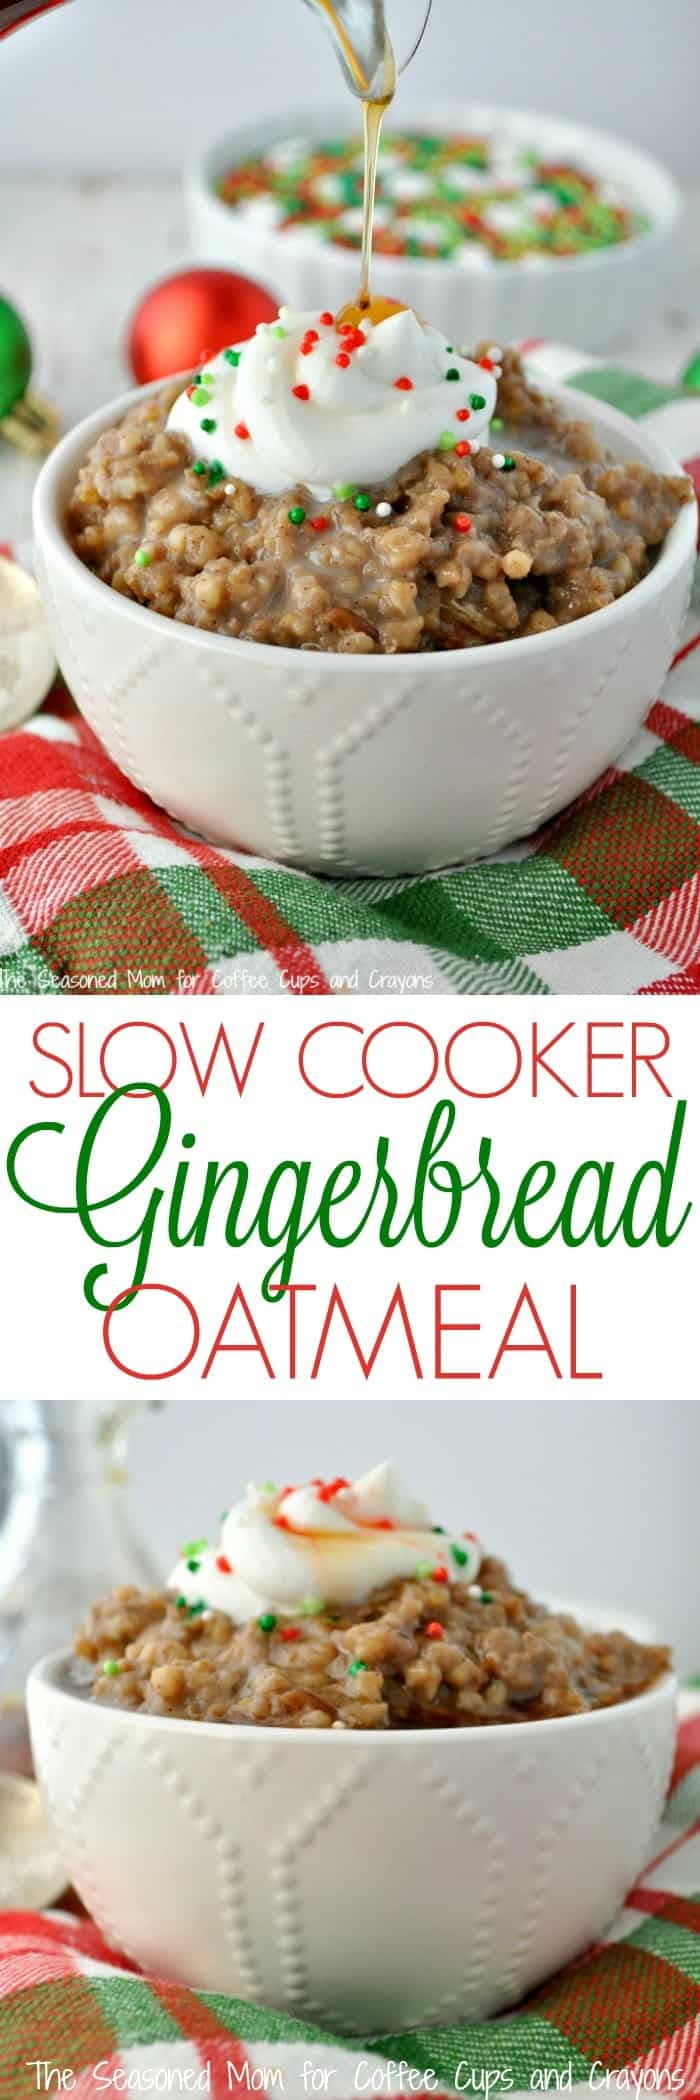 Slow Cooker Gingerbread Oatmeal